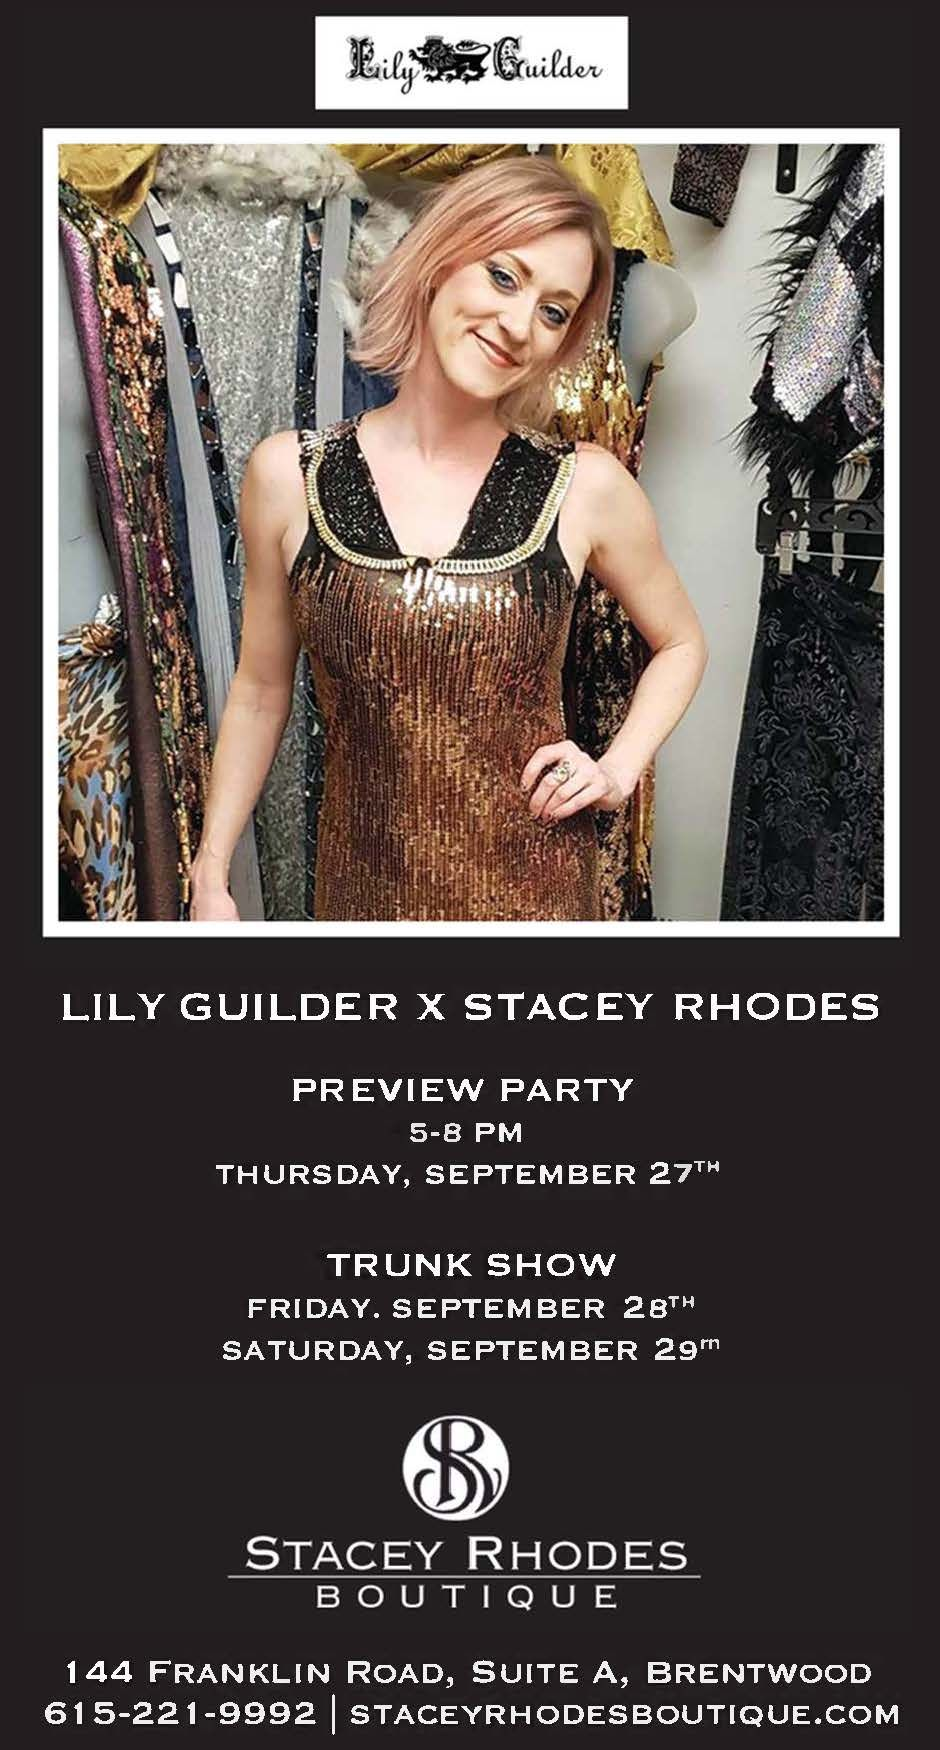 Lily Guilder Revised Invitation.JPG